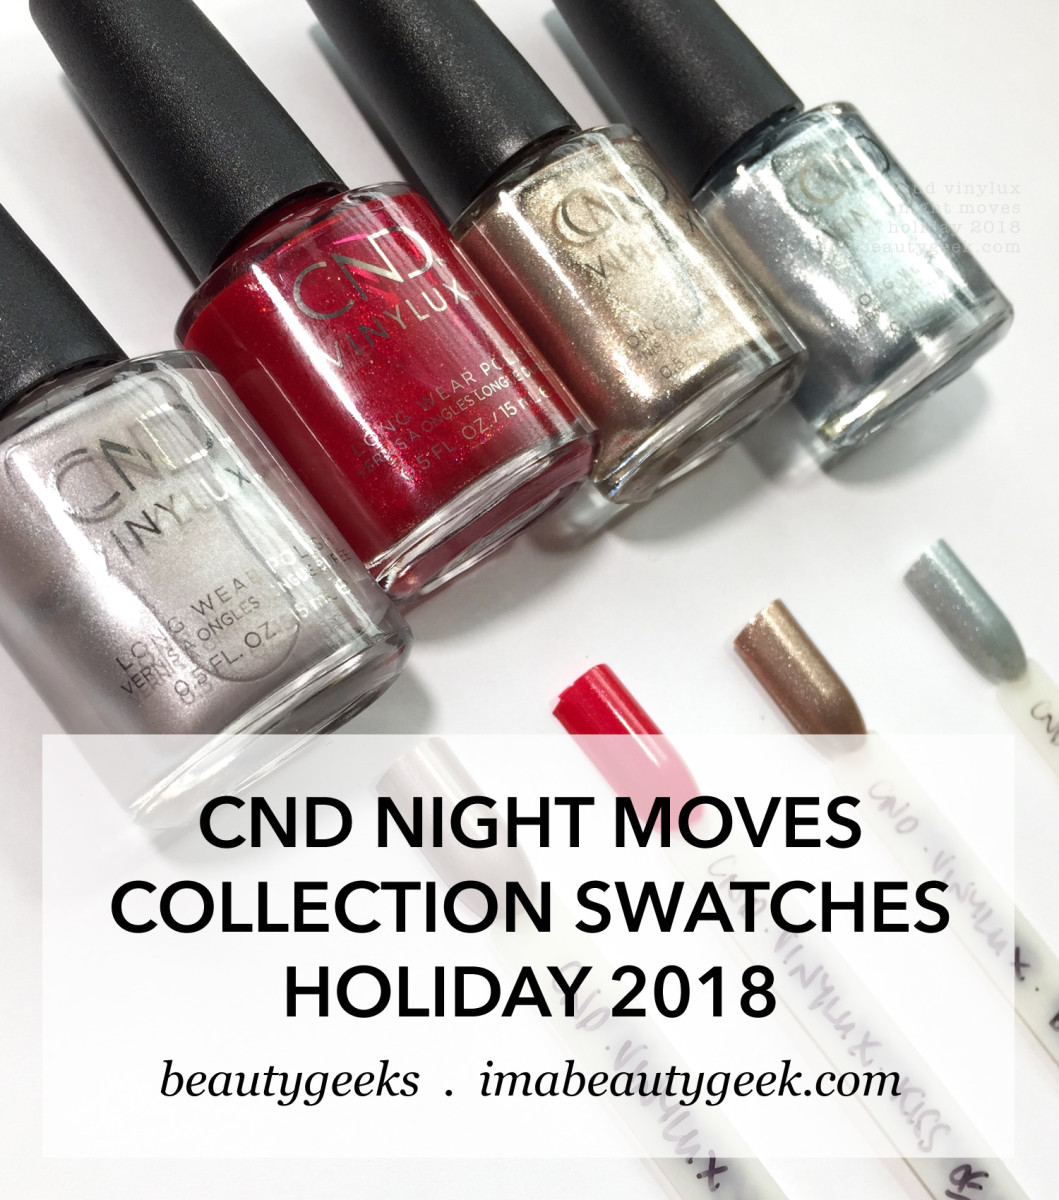 CND Night Moves Collection Swatches Review Holiday 2018 Vinylux title image